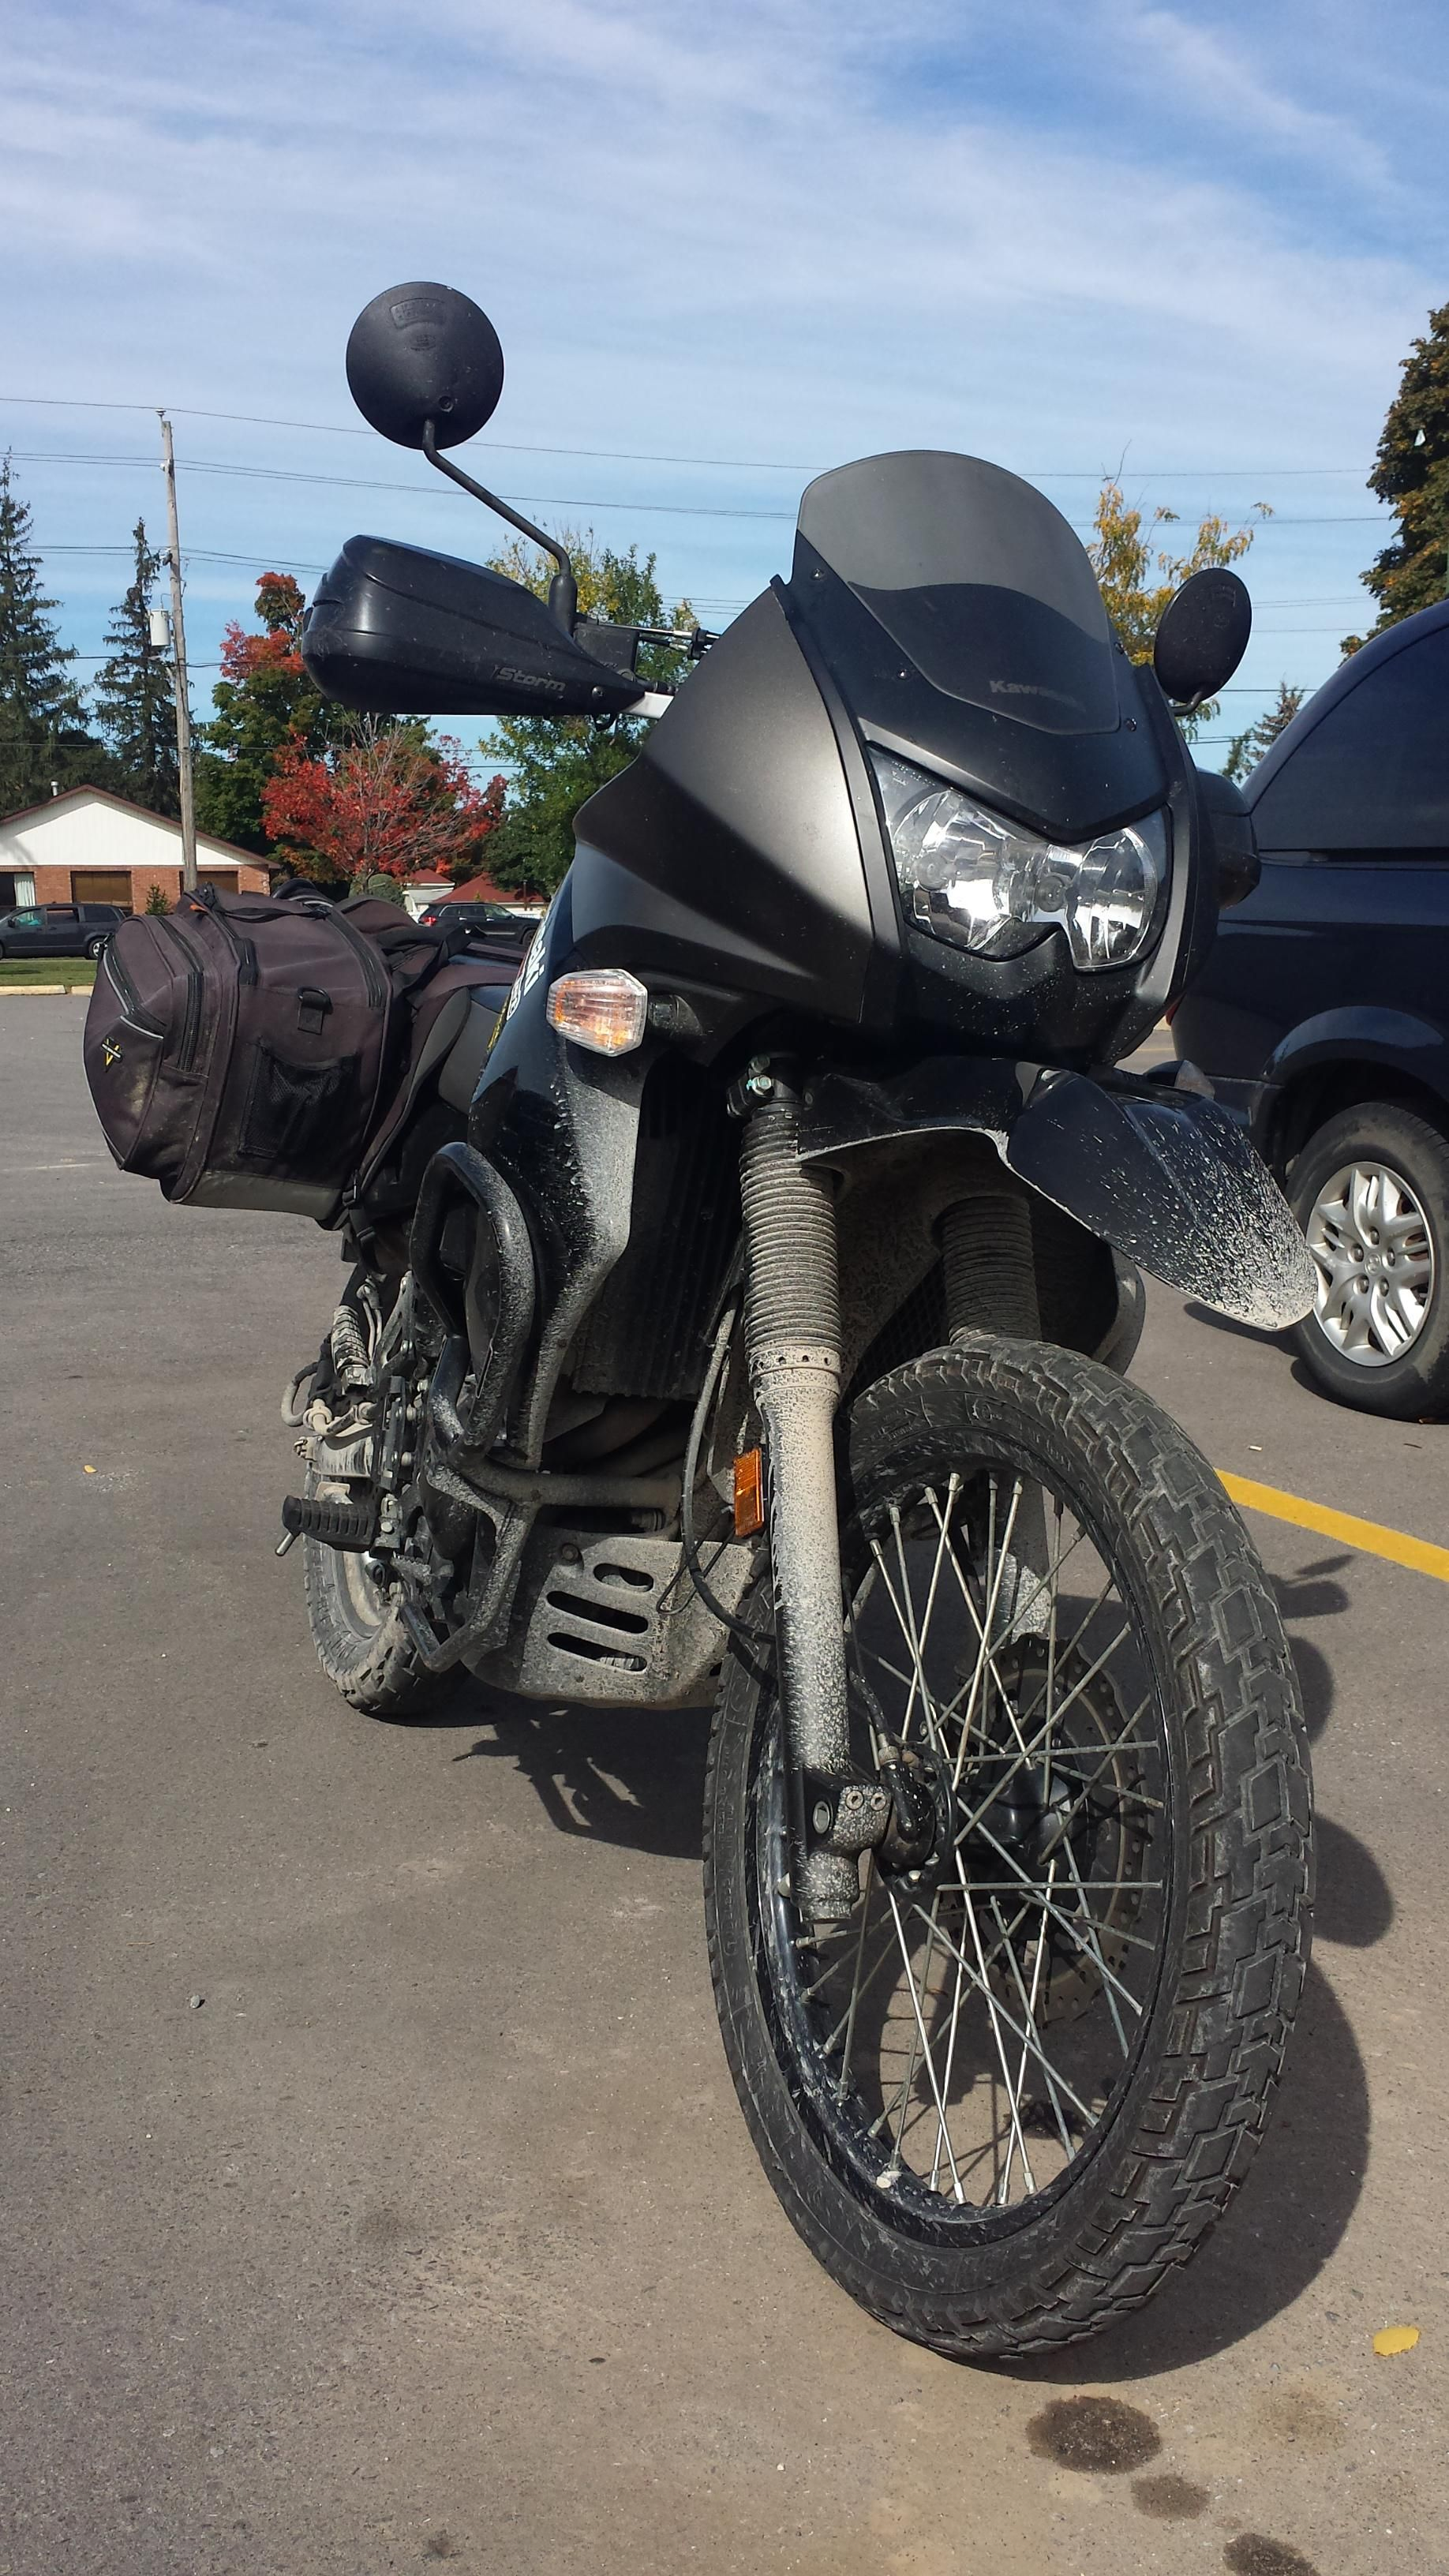 Pic of everyones bikes. - Page 159 - KLR650.NET Forums - Your Kawasaki  KLR650 Resource! - The Original KLR650 Forum!